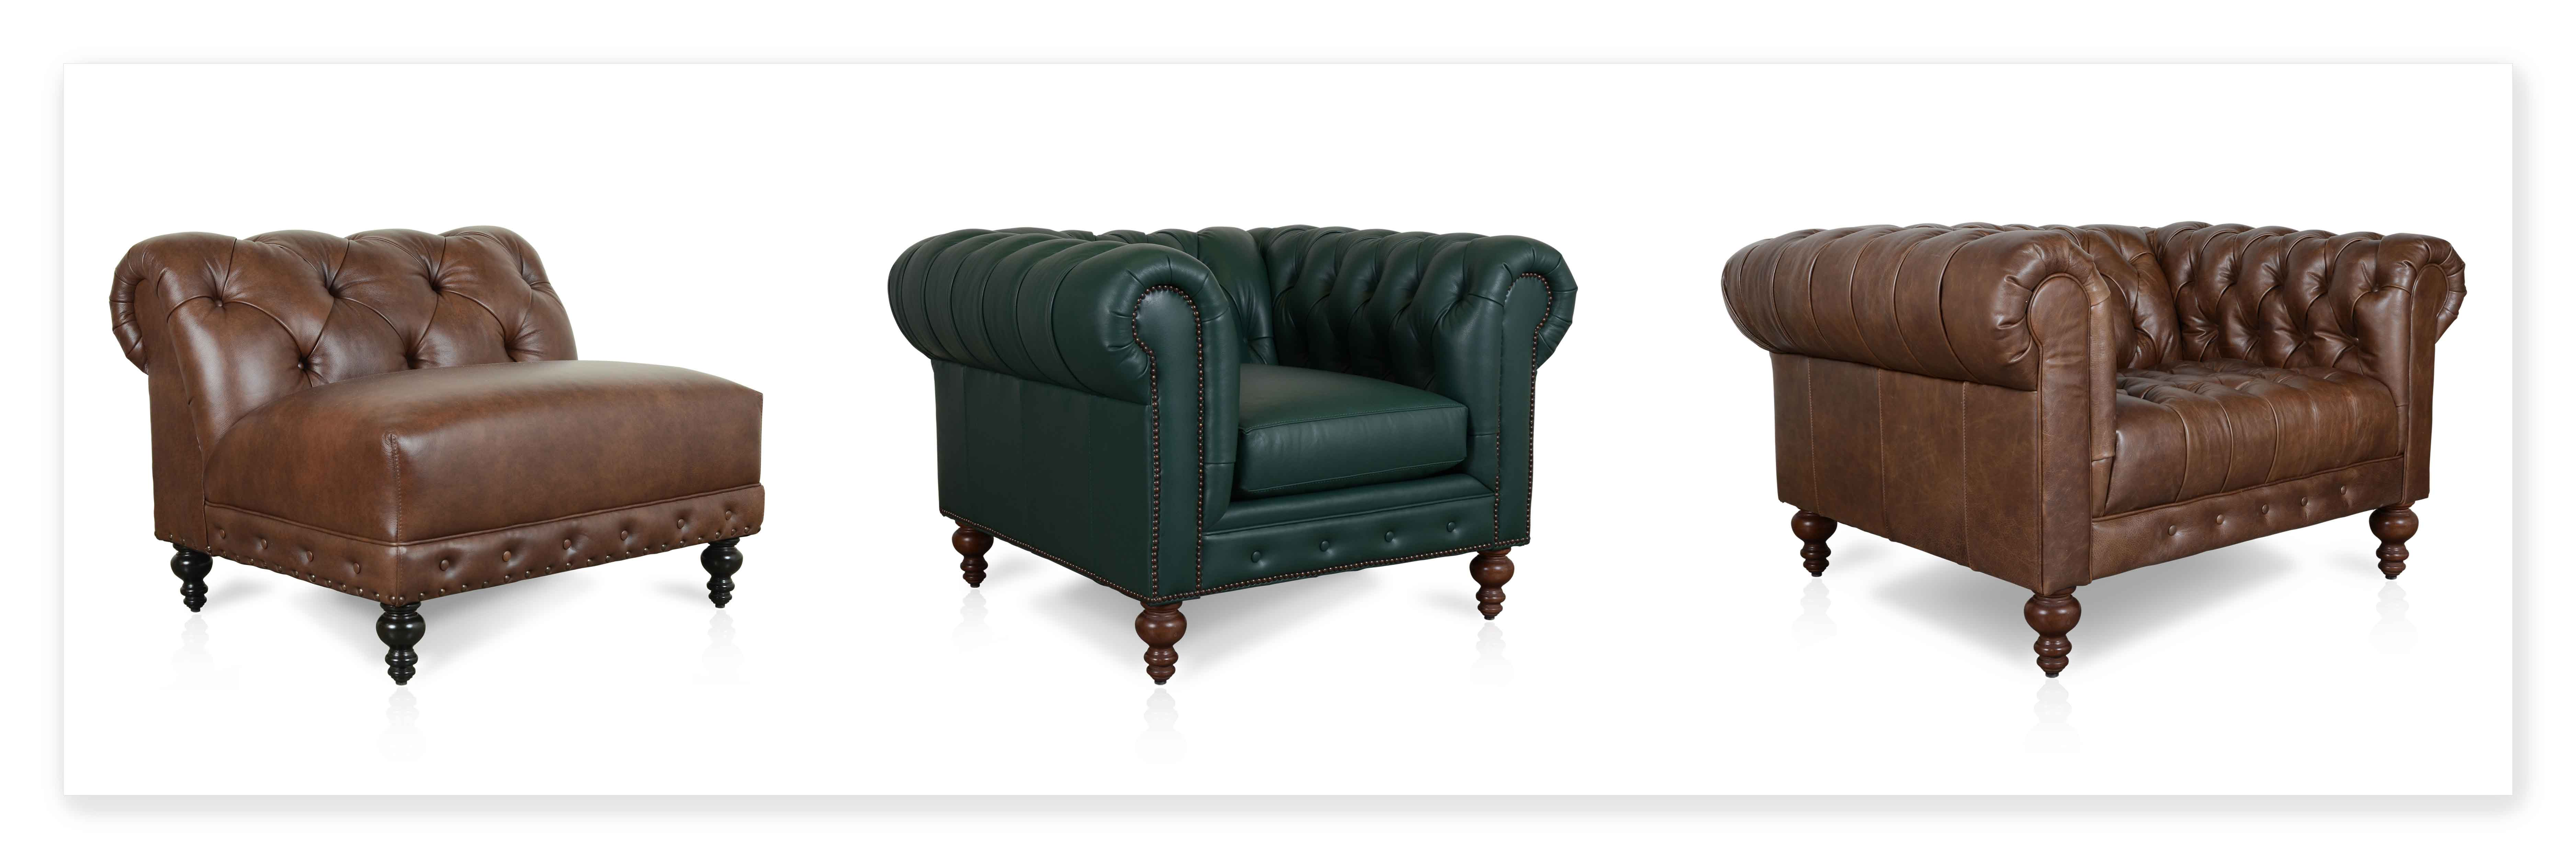 Leather Chesterfield Chair Cococo Custom Chesterfield Leather Tufted Sofas Made In Usa